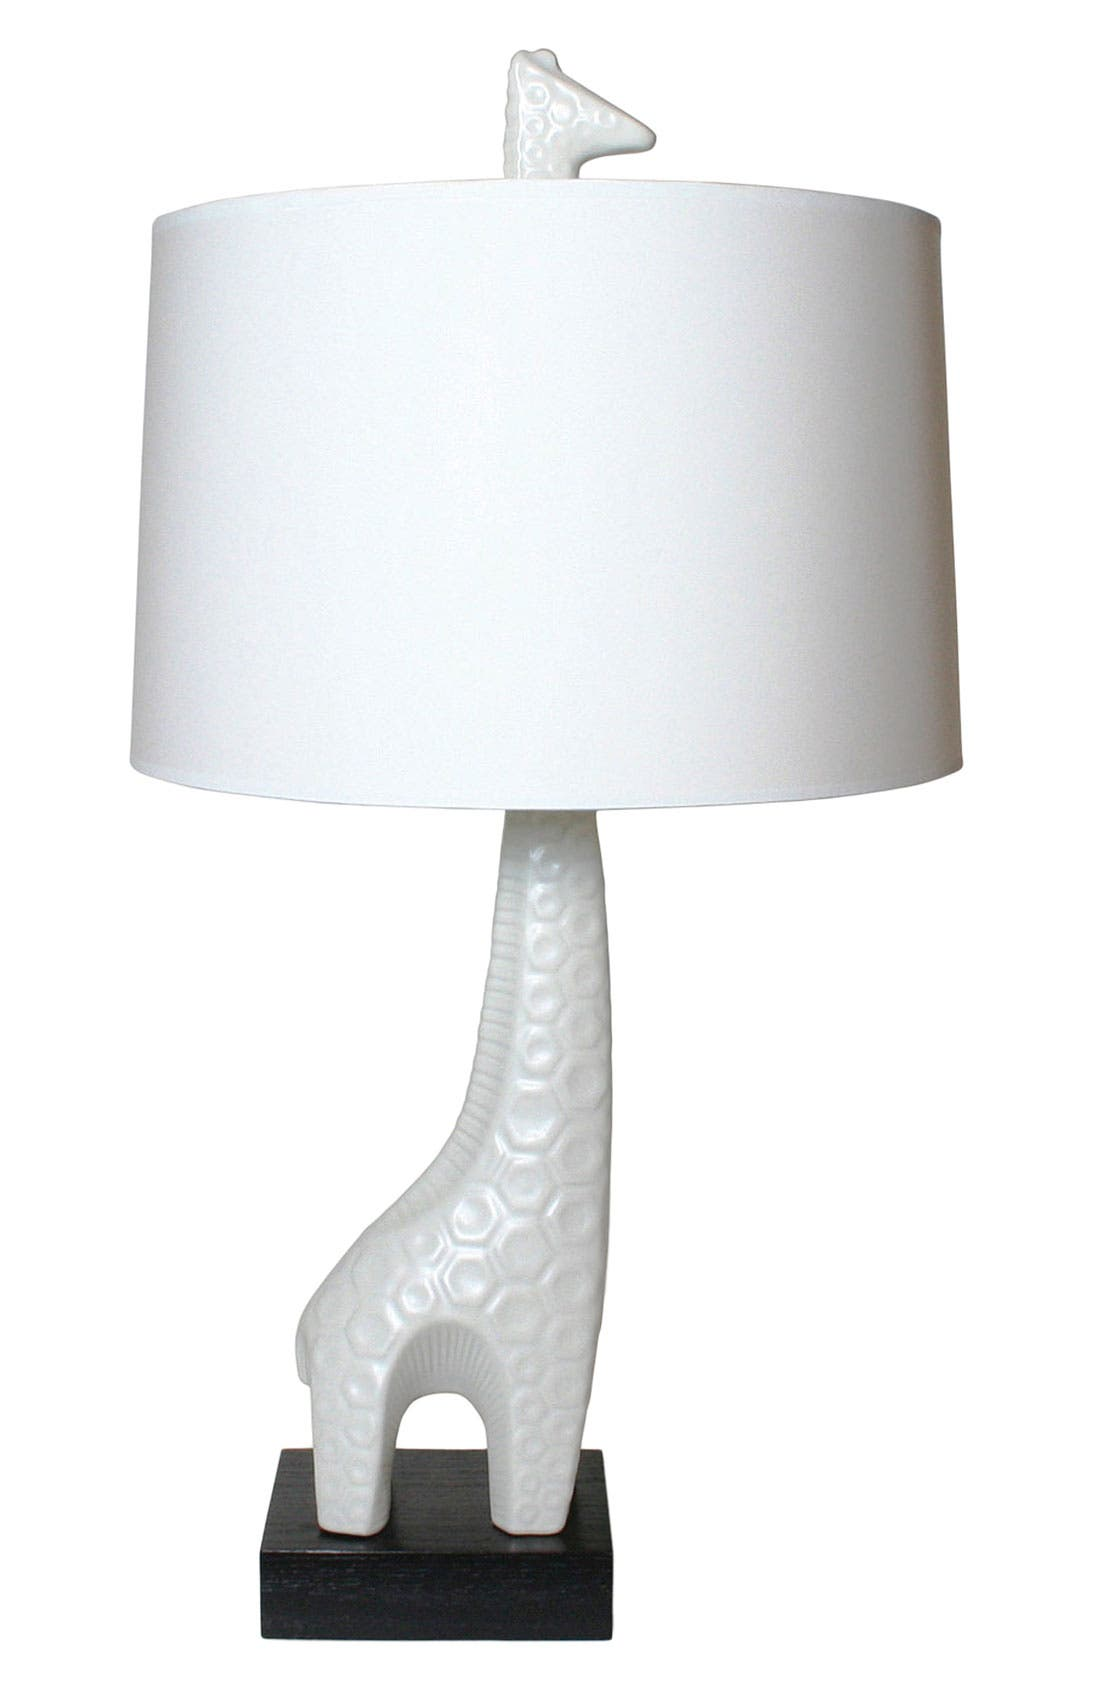 'Giraffe' Lamp,                             Main thumbnail 1, color,                             000